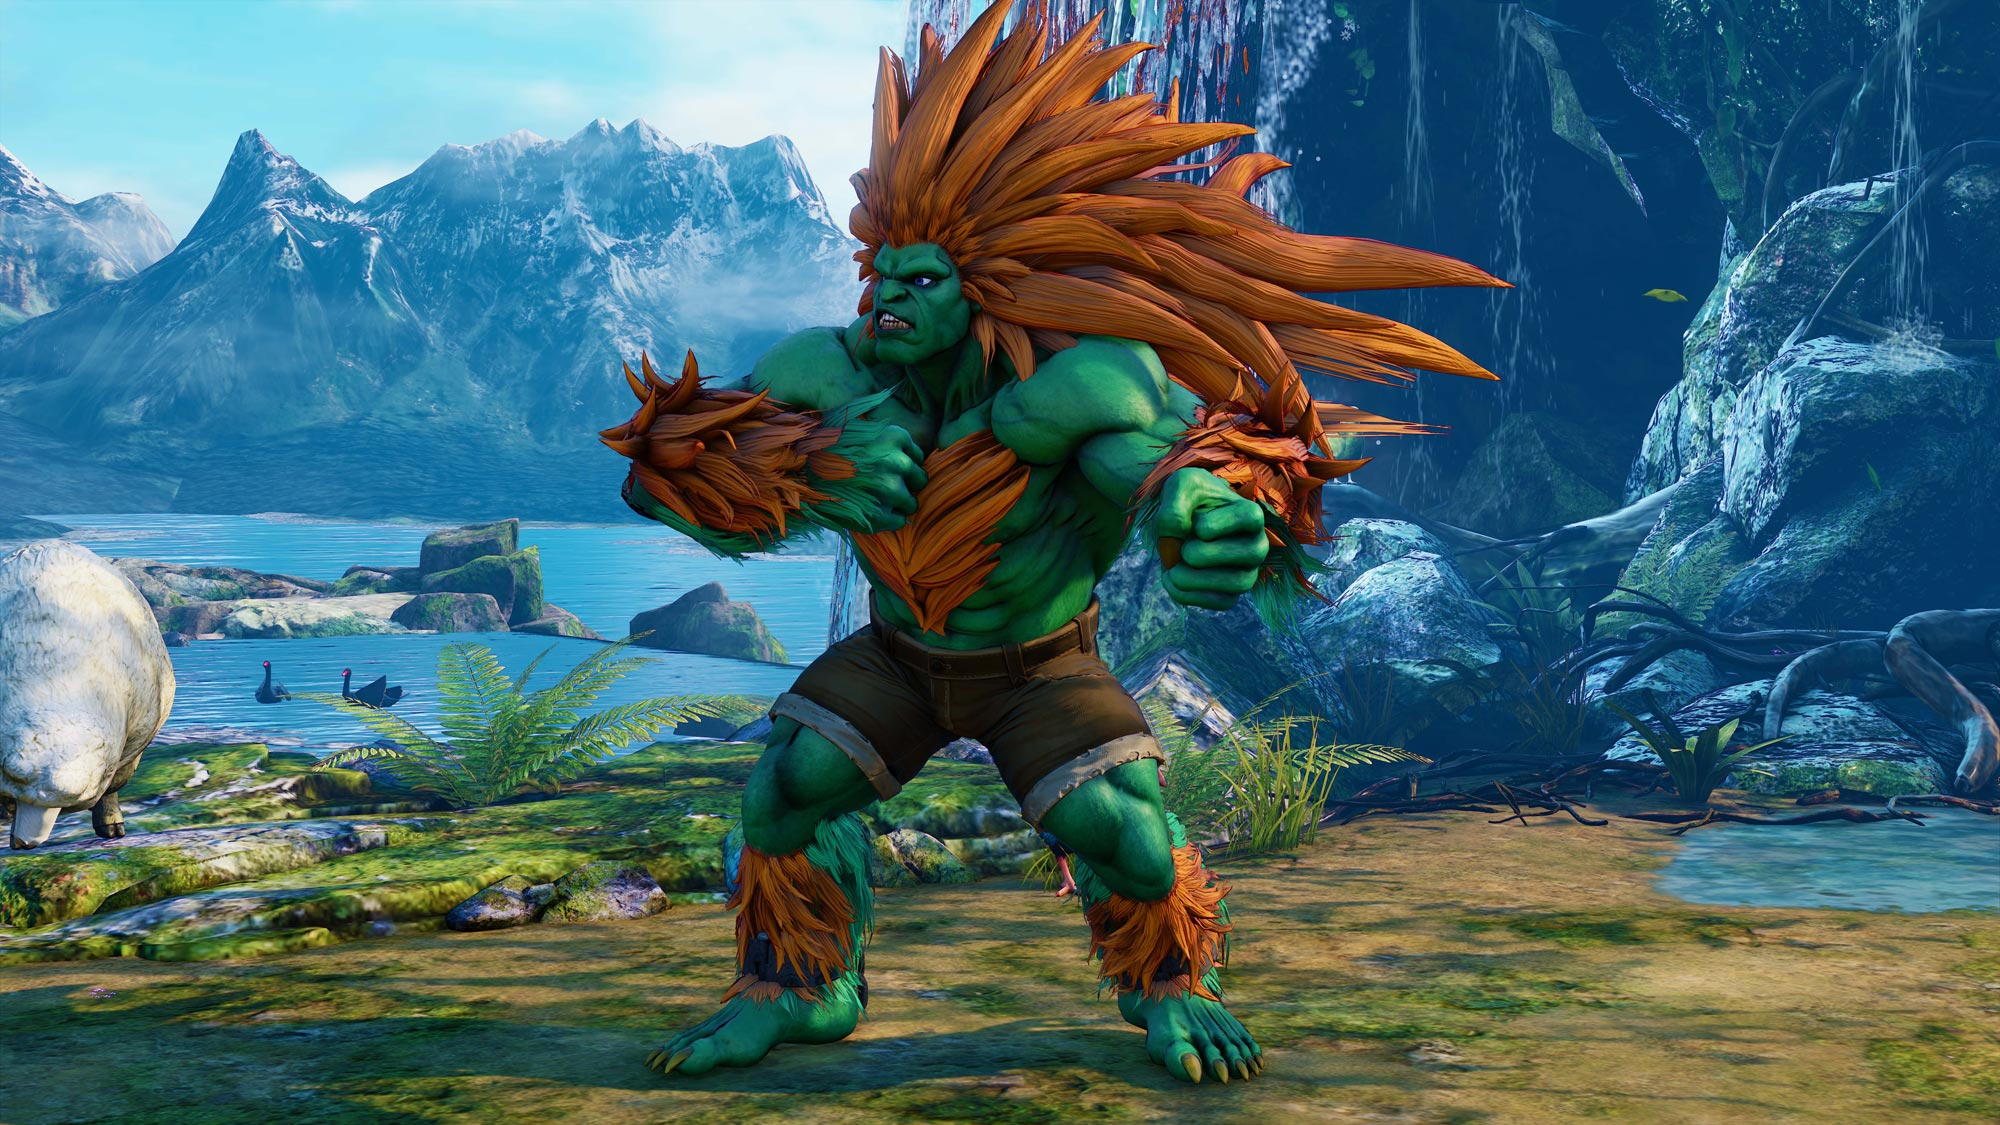 Blanka in Street Fighter 5: Arcade Edition 4 out of 11 image gallery